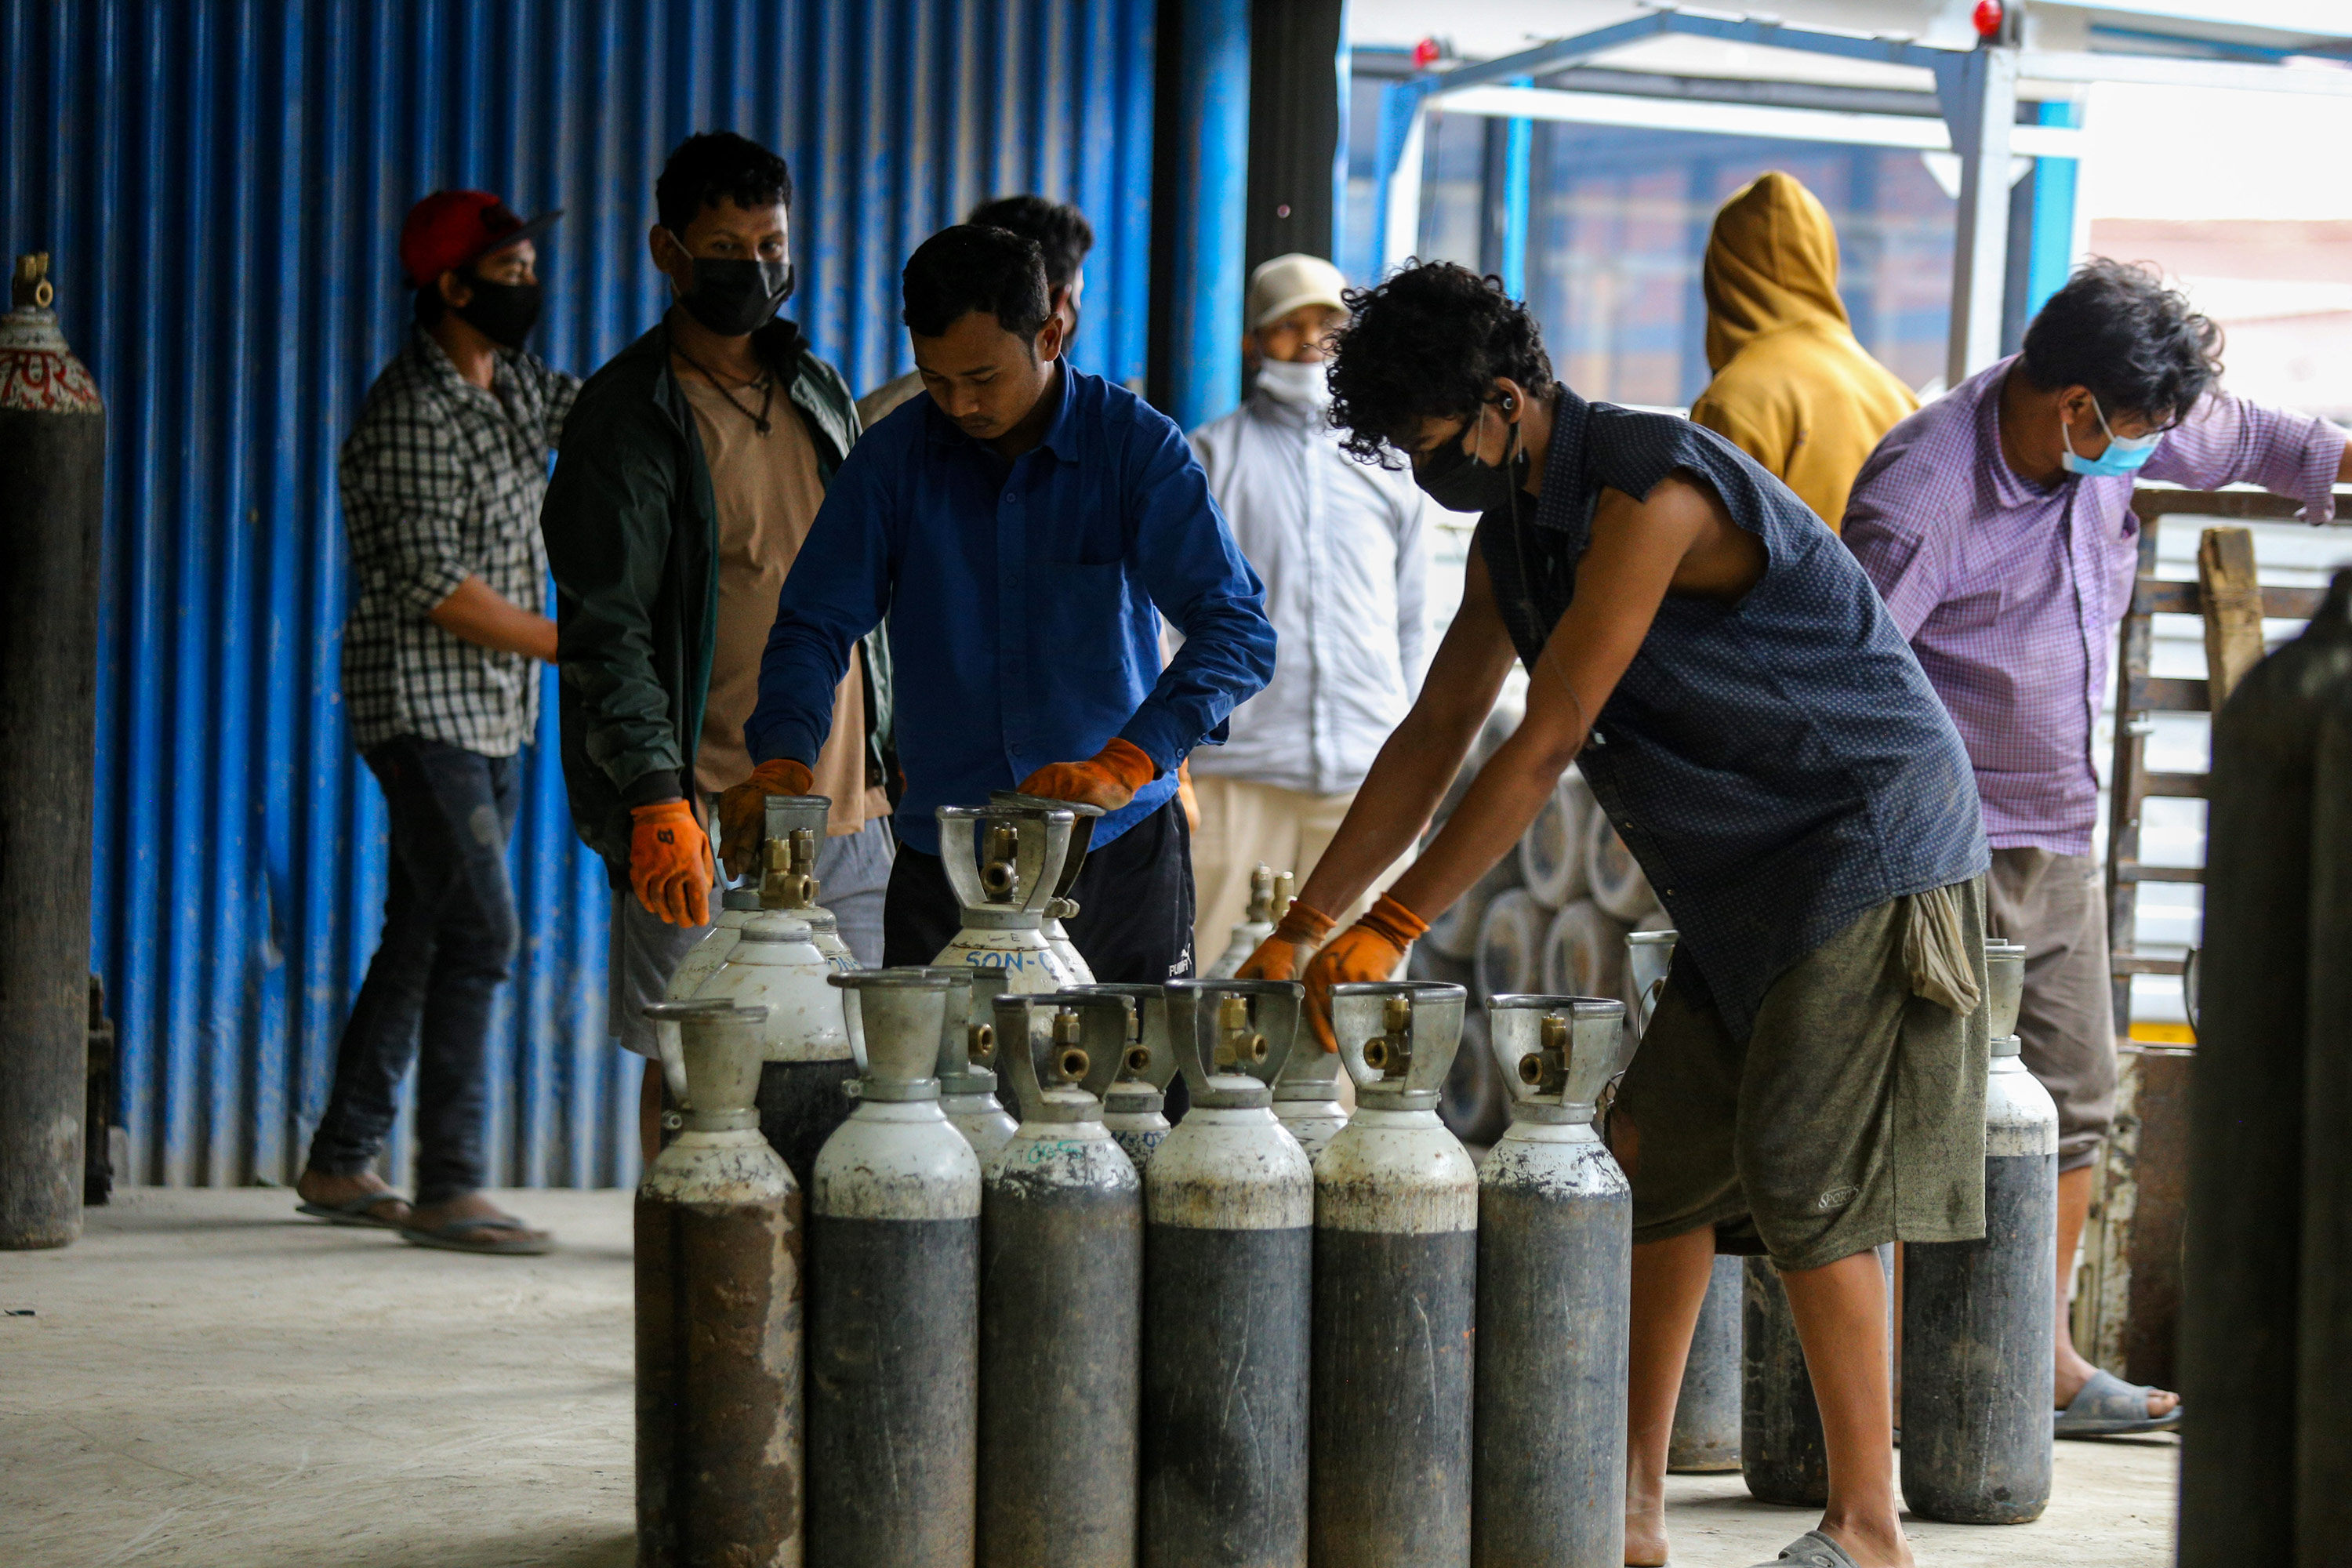 Workers unload oxygen cylinders at a hospital in Lalitpur, Nepal, on May 2.